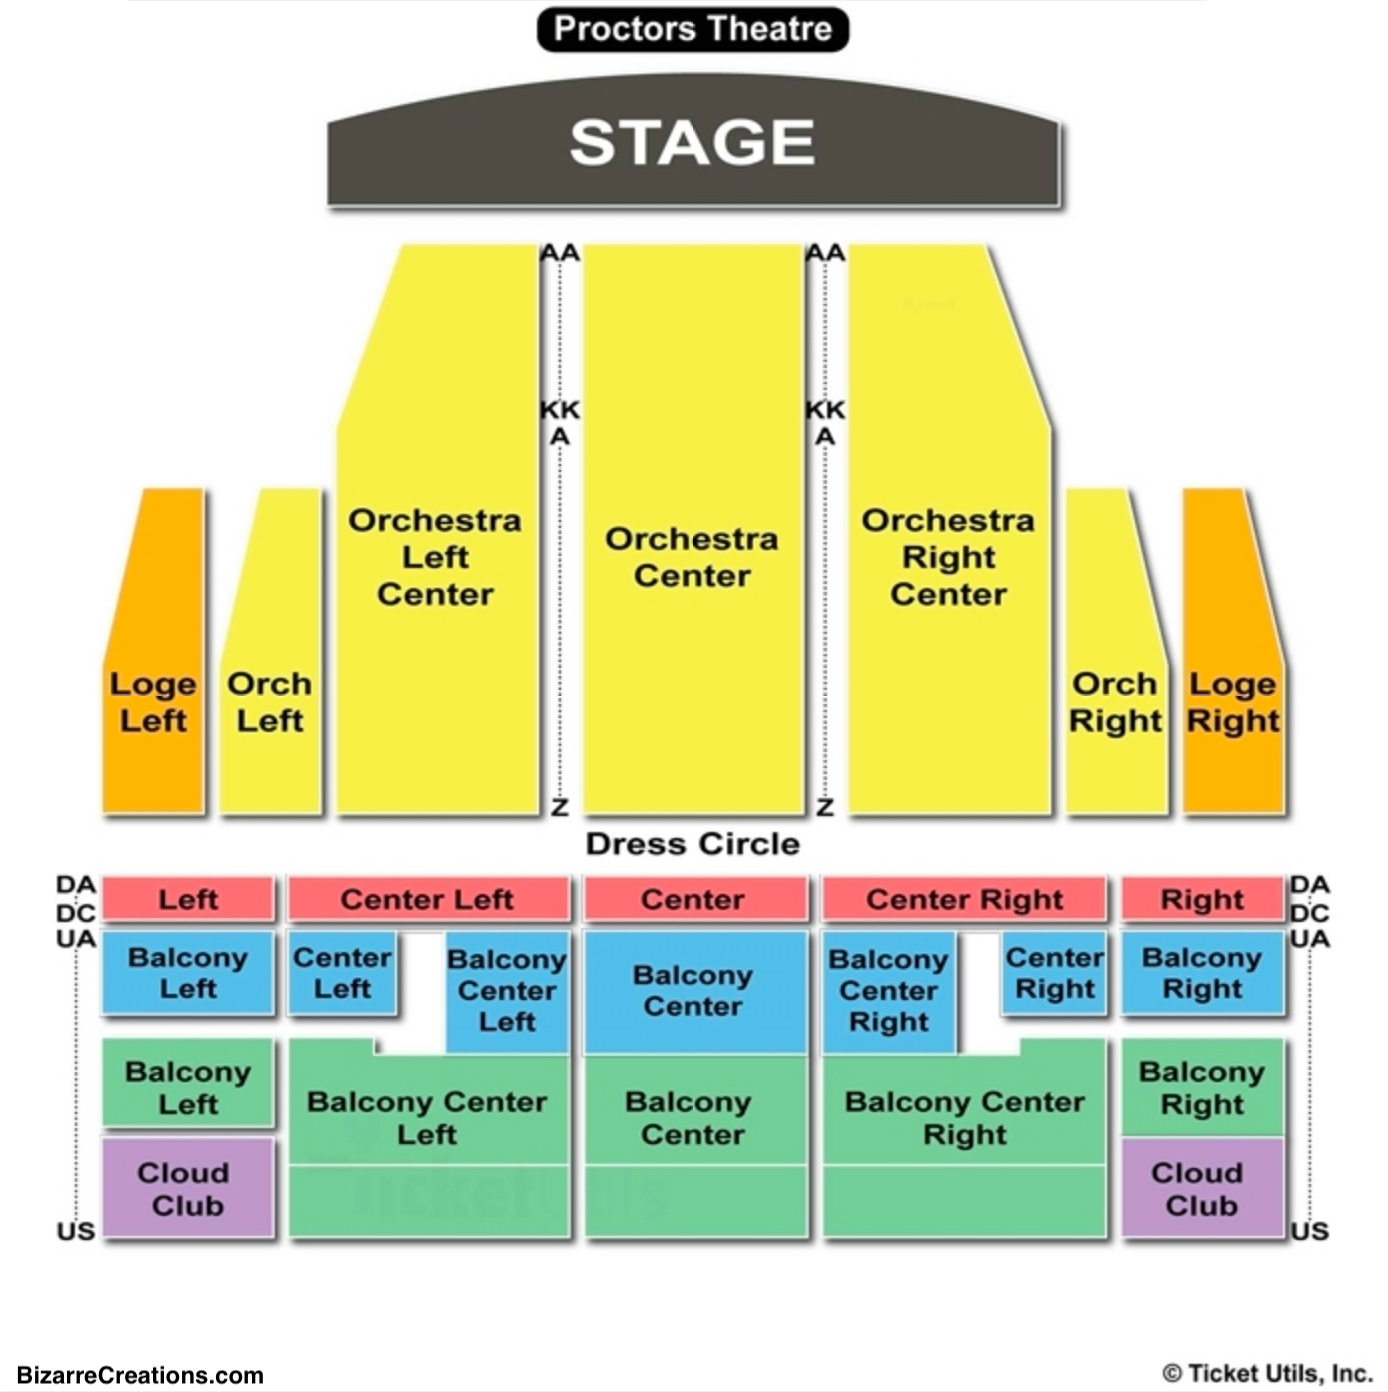 Proctors Theatre Seating Chart Schenectady